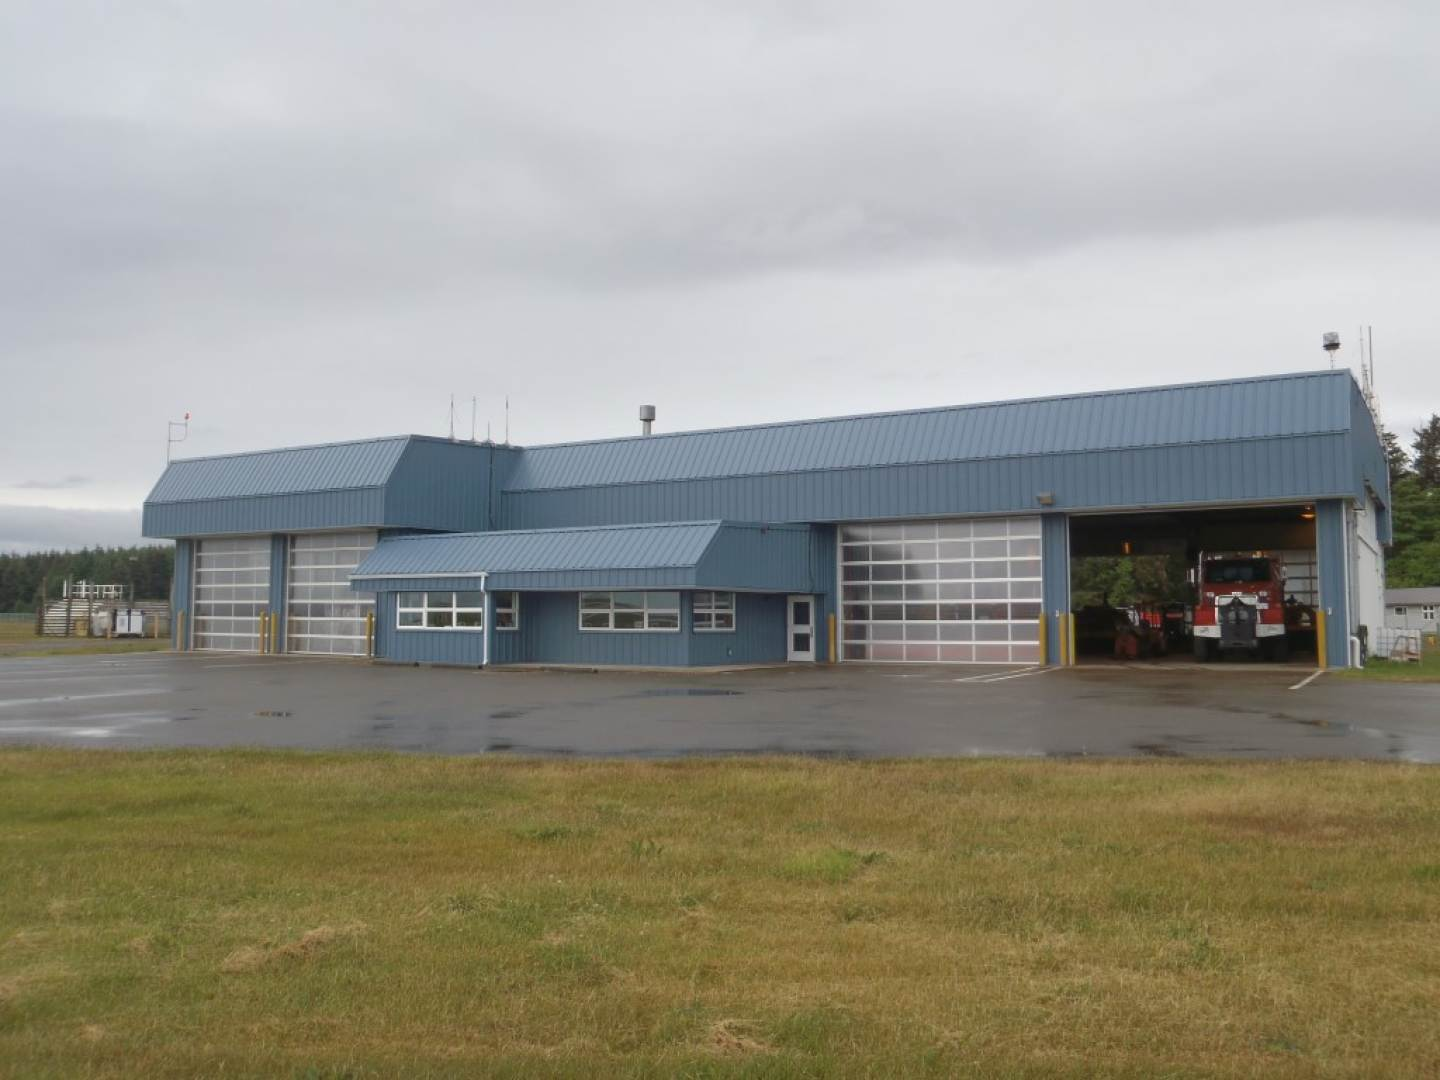 Sandspit Airport Combined Services Building